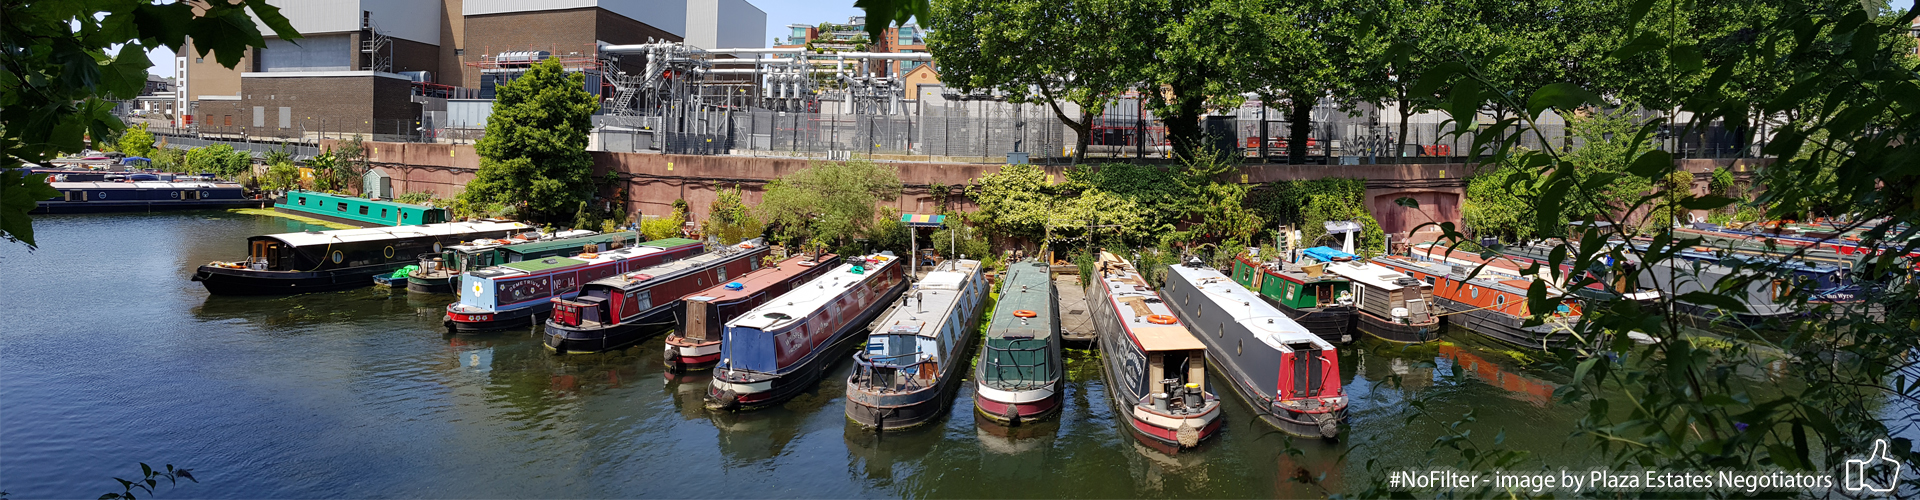 Regents River Canal by Plaza Estates